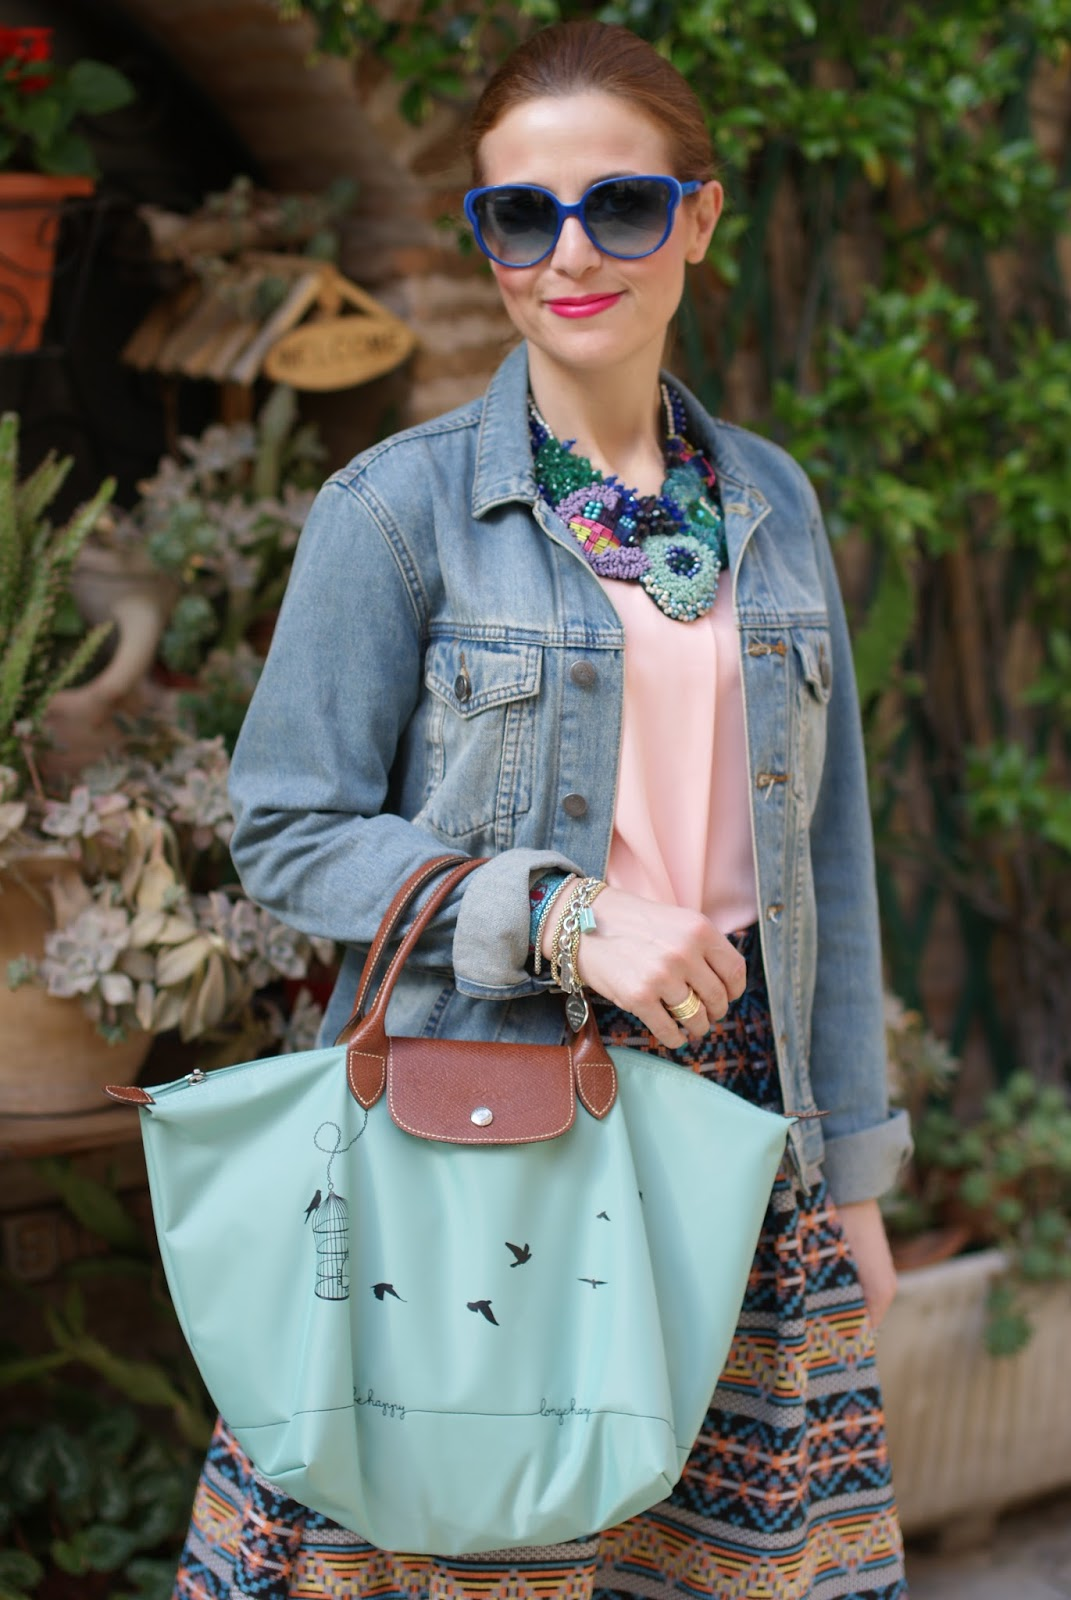 Le Pliage 2015, Longchamp Le Pliage cage aux oiseaux bag, Le Pliage Longchamp birds, denim jacket, jacquard midi skirt, simonab bijoux necklace, Fashion and Cookies fashion blog